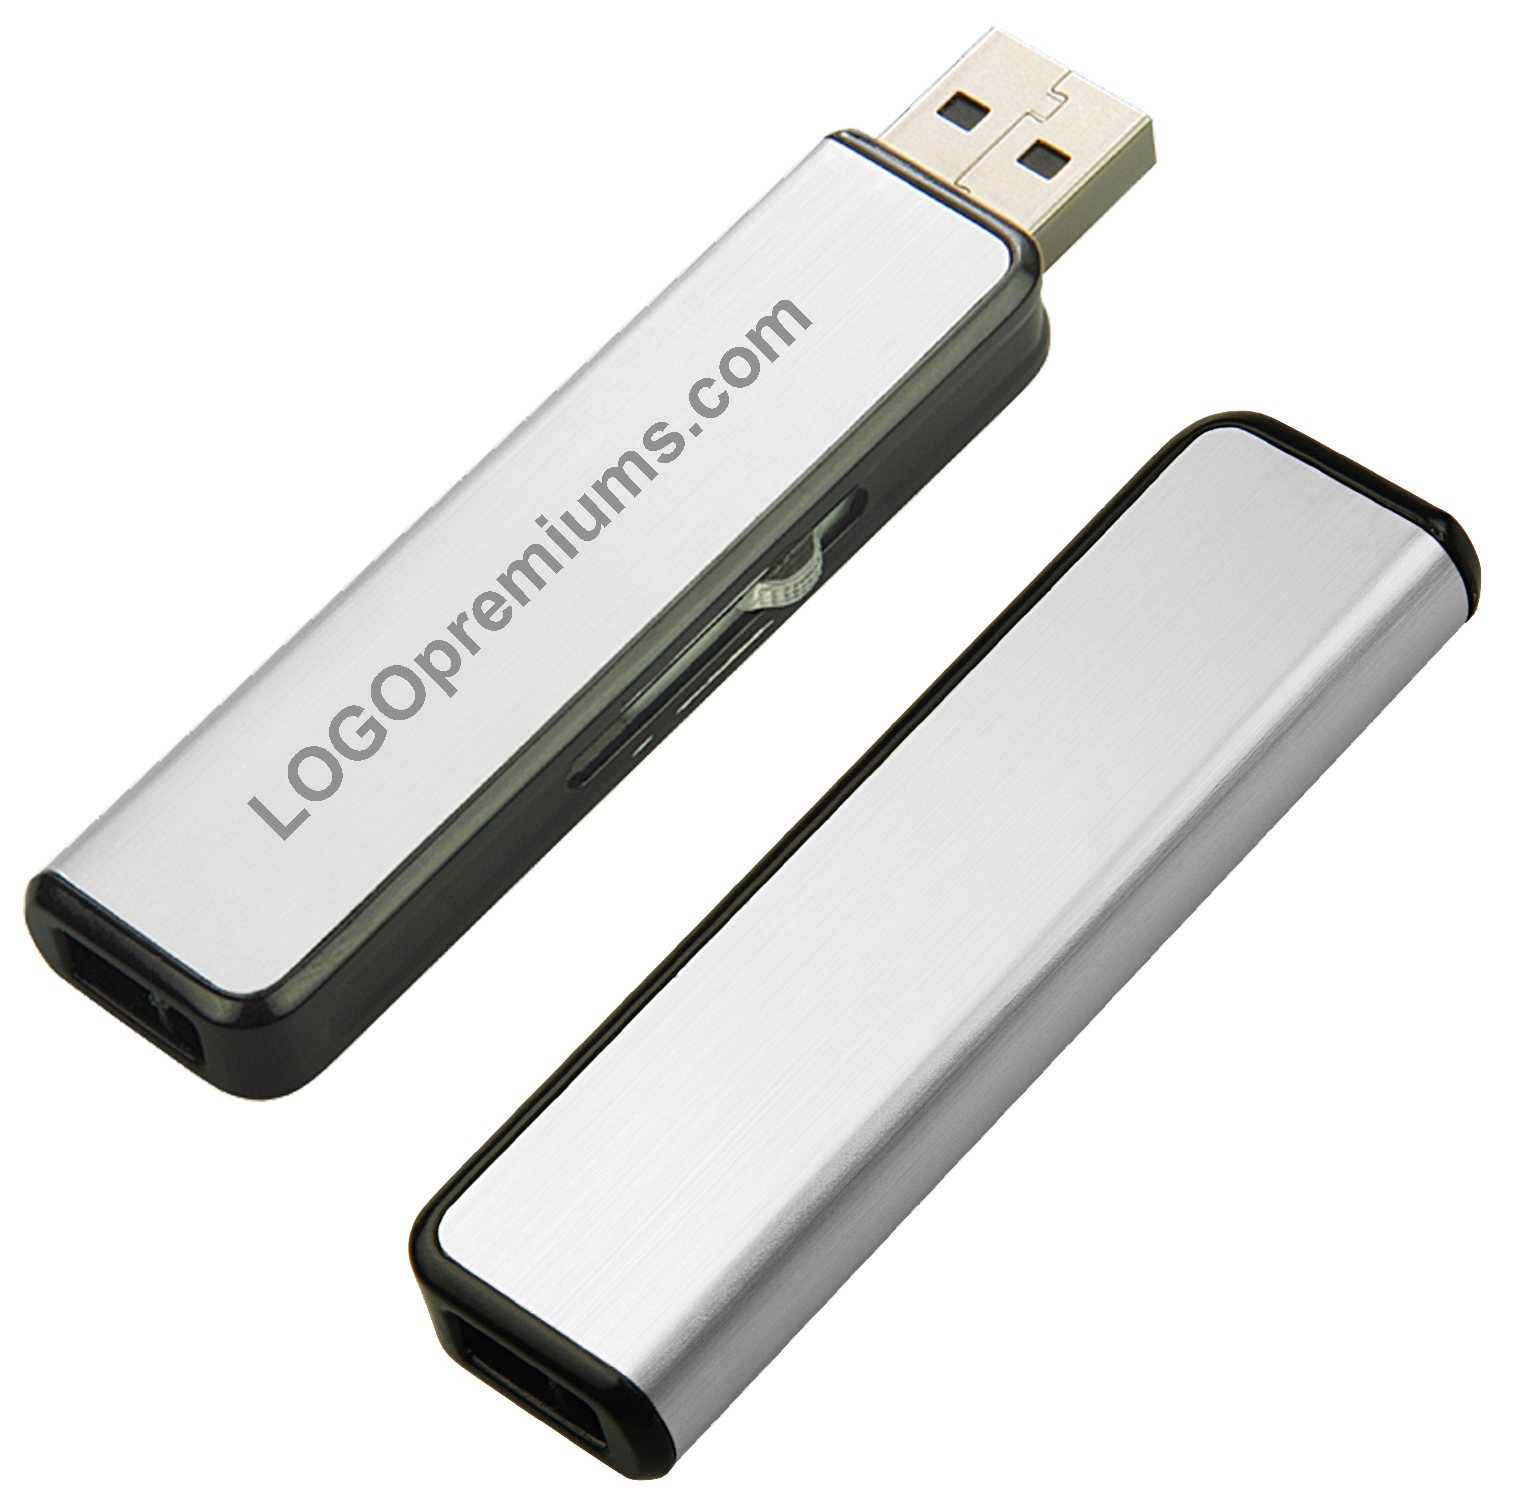 Consumer Electronics - USB Flash Drives